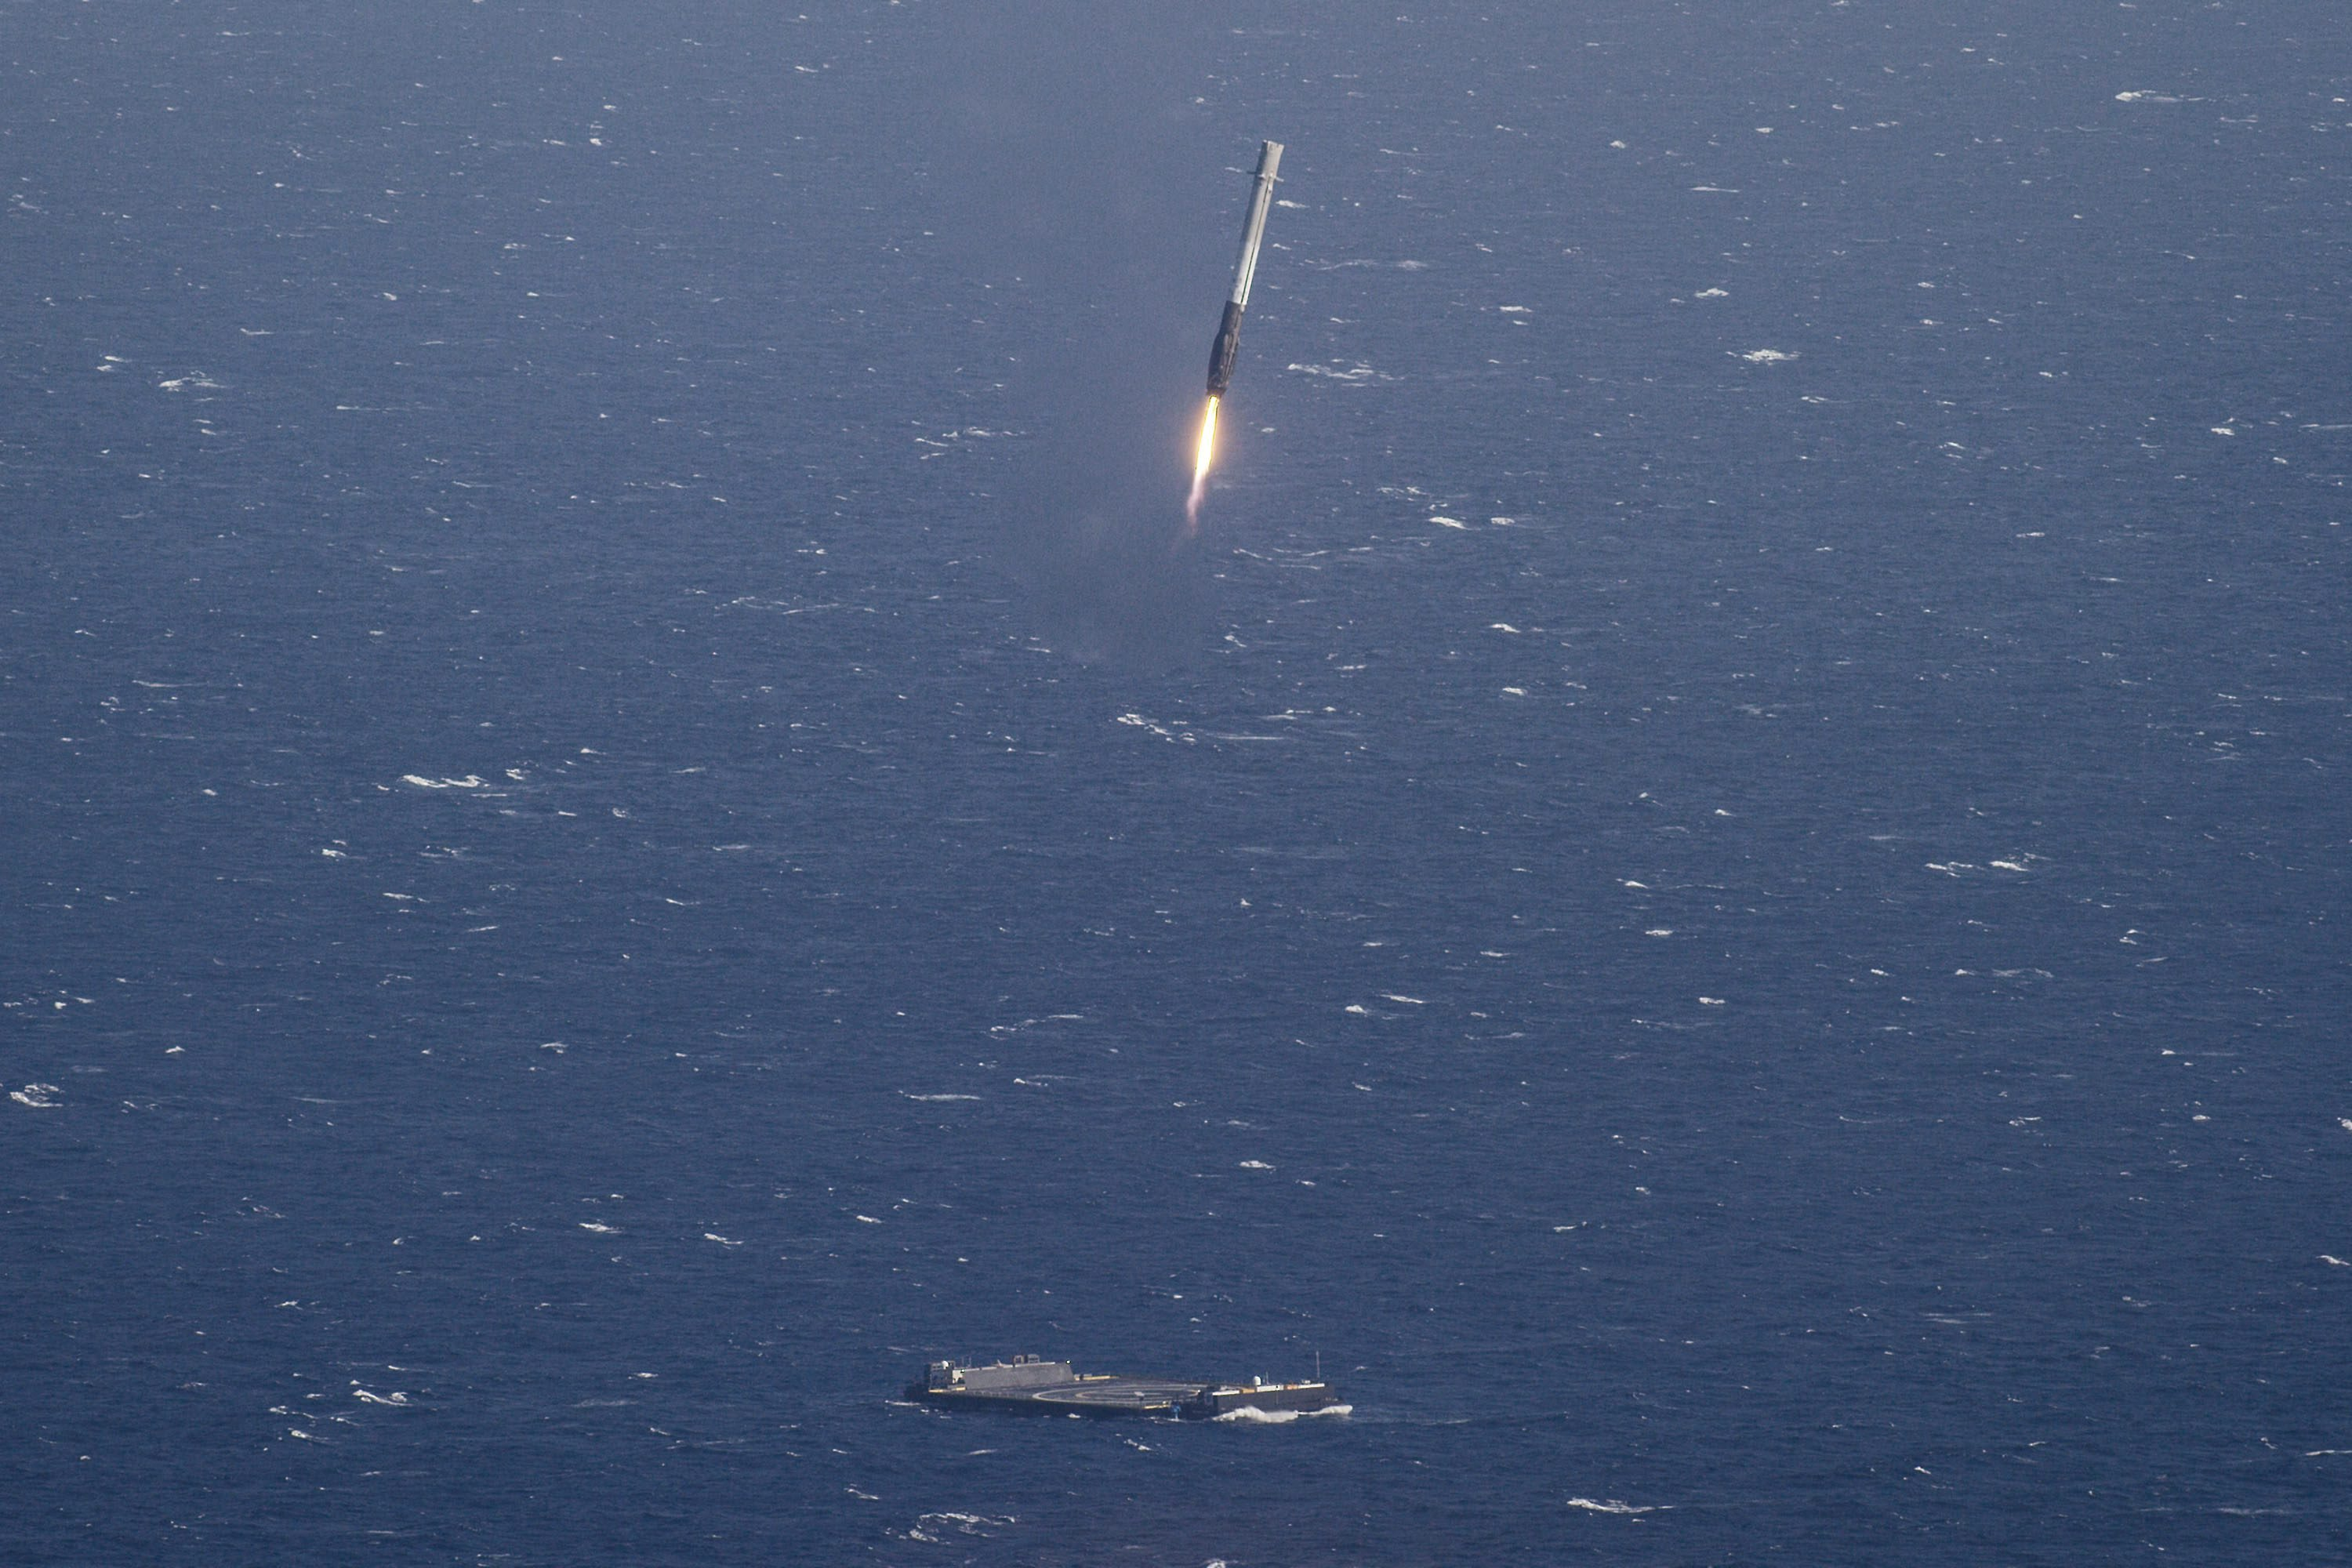 A SpaceX Falcon 9 rocket landing on a platform at sea in the Atlantic Ocean, on April 9, 2016.